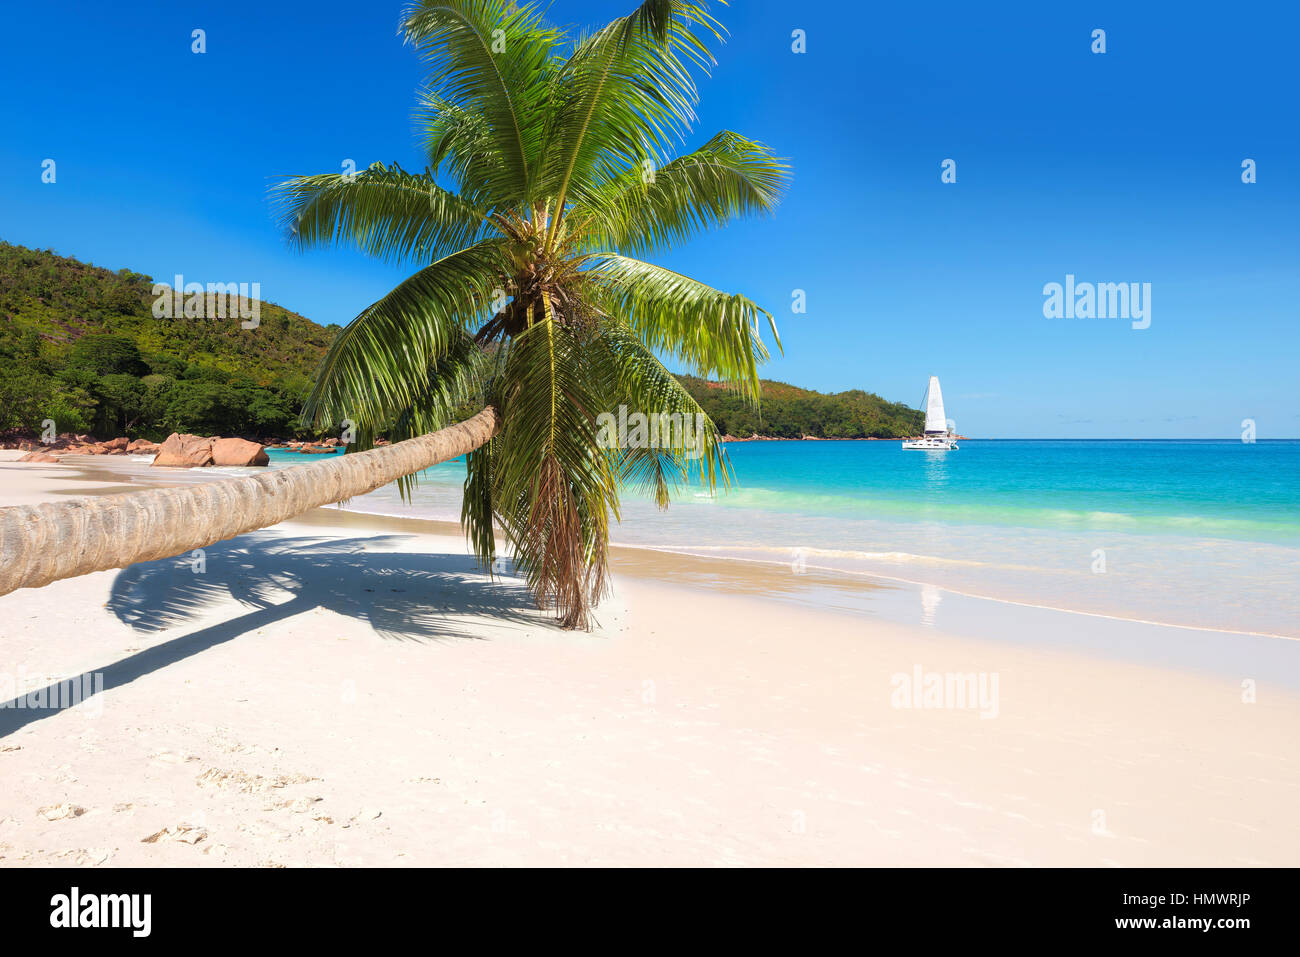 Palm tree on tropical beach. - Stock Image